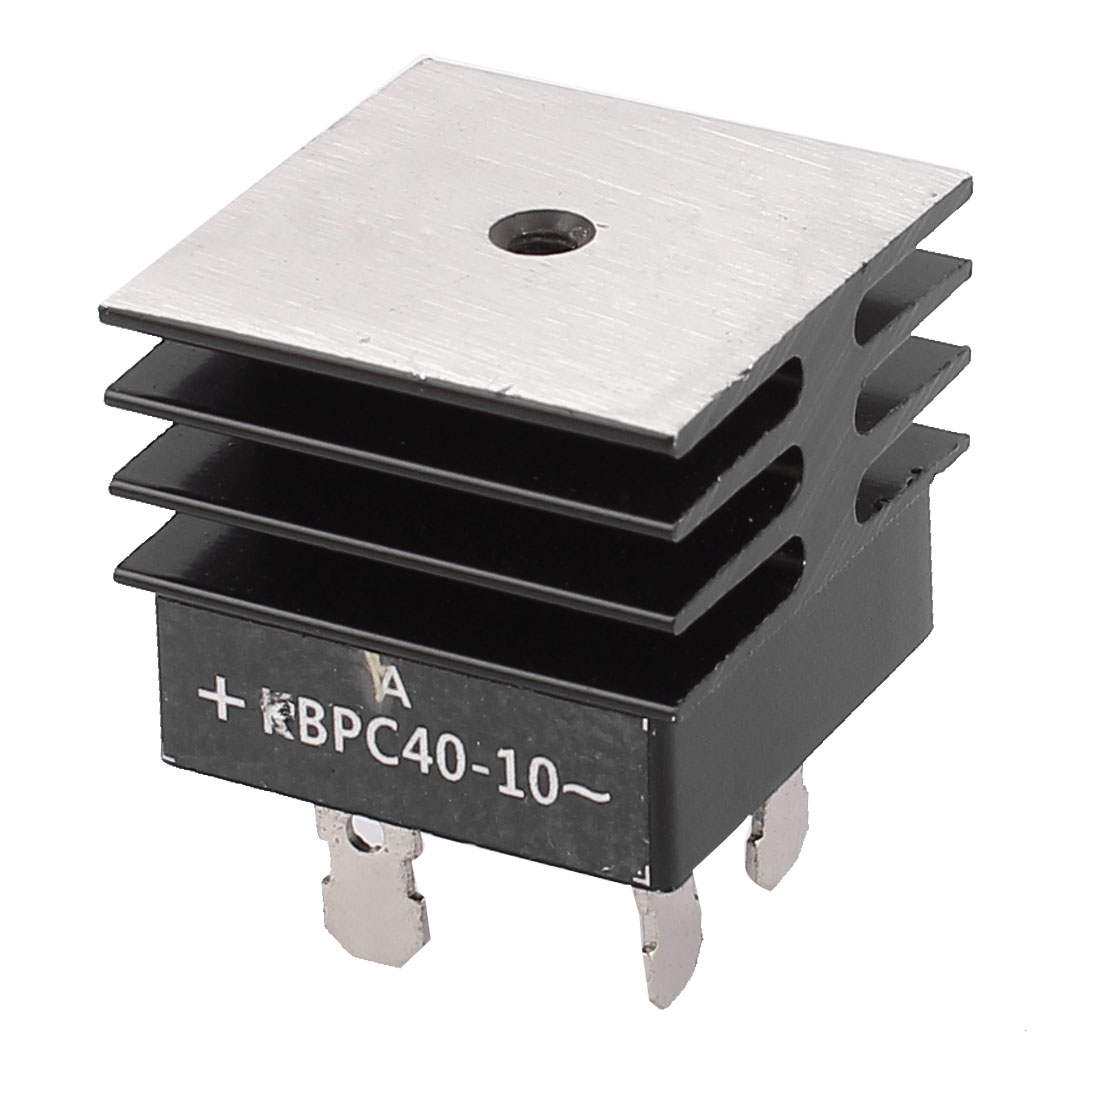 KBPC40-10 40A 1KV Single Phase Bridge Rectifier Half-Wave Black w Heatsink